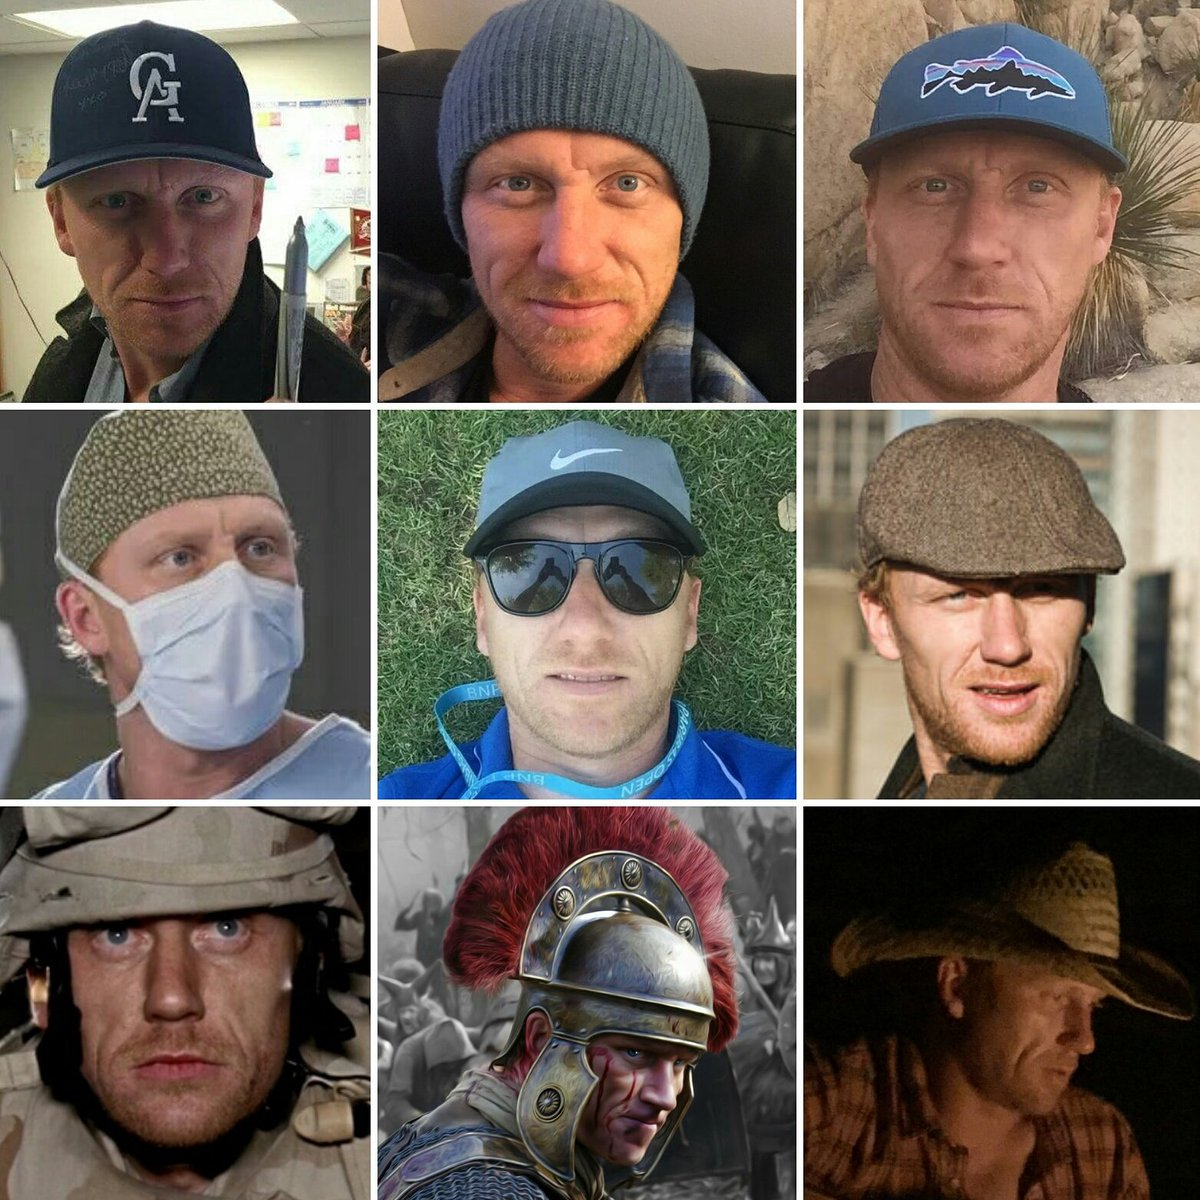 #NationalHatDay  Kevin wears LOTS of hats besides #actor #director  #baseball #beannie #tobbagan #scrubcap #tam #helmet #cowboy &amp; more  <br>http://pic.twitter.com/4knYepvtmT